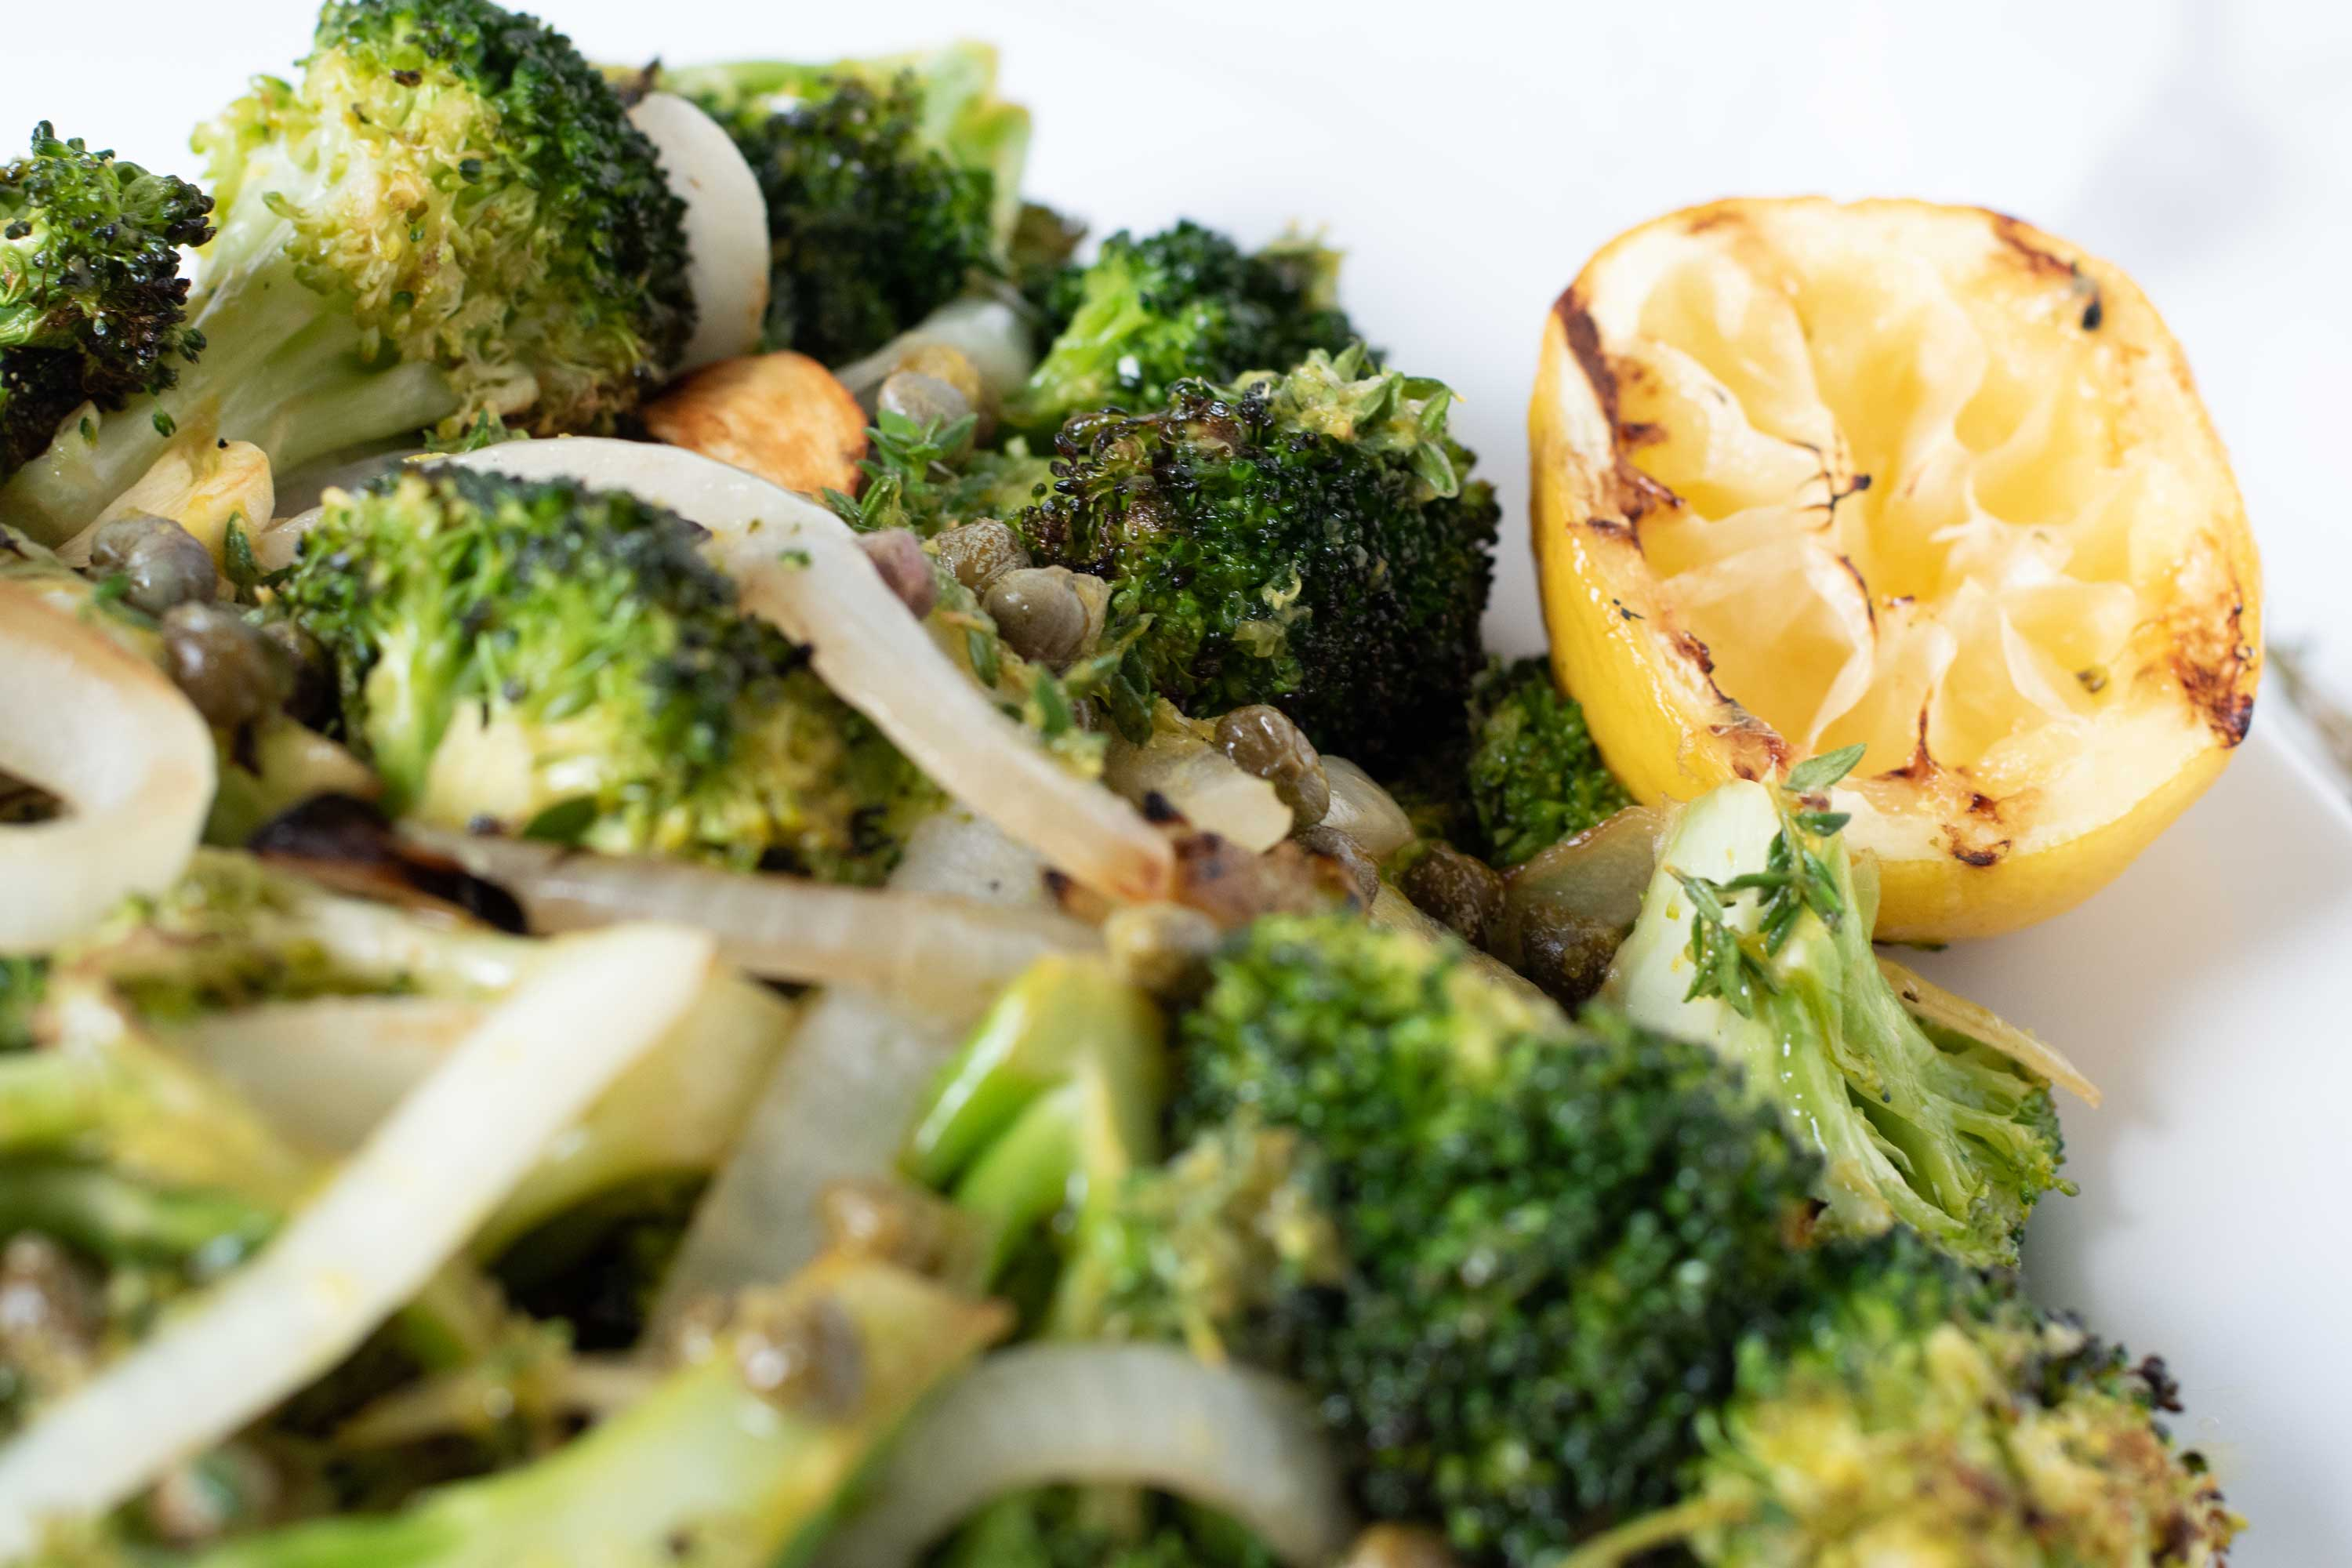 Close up of grilled broccoli and onions.